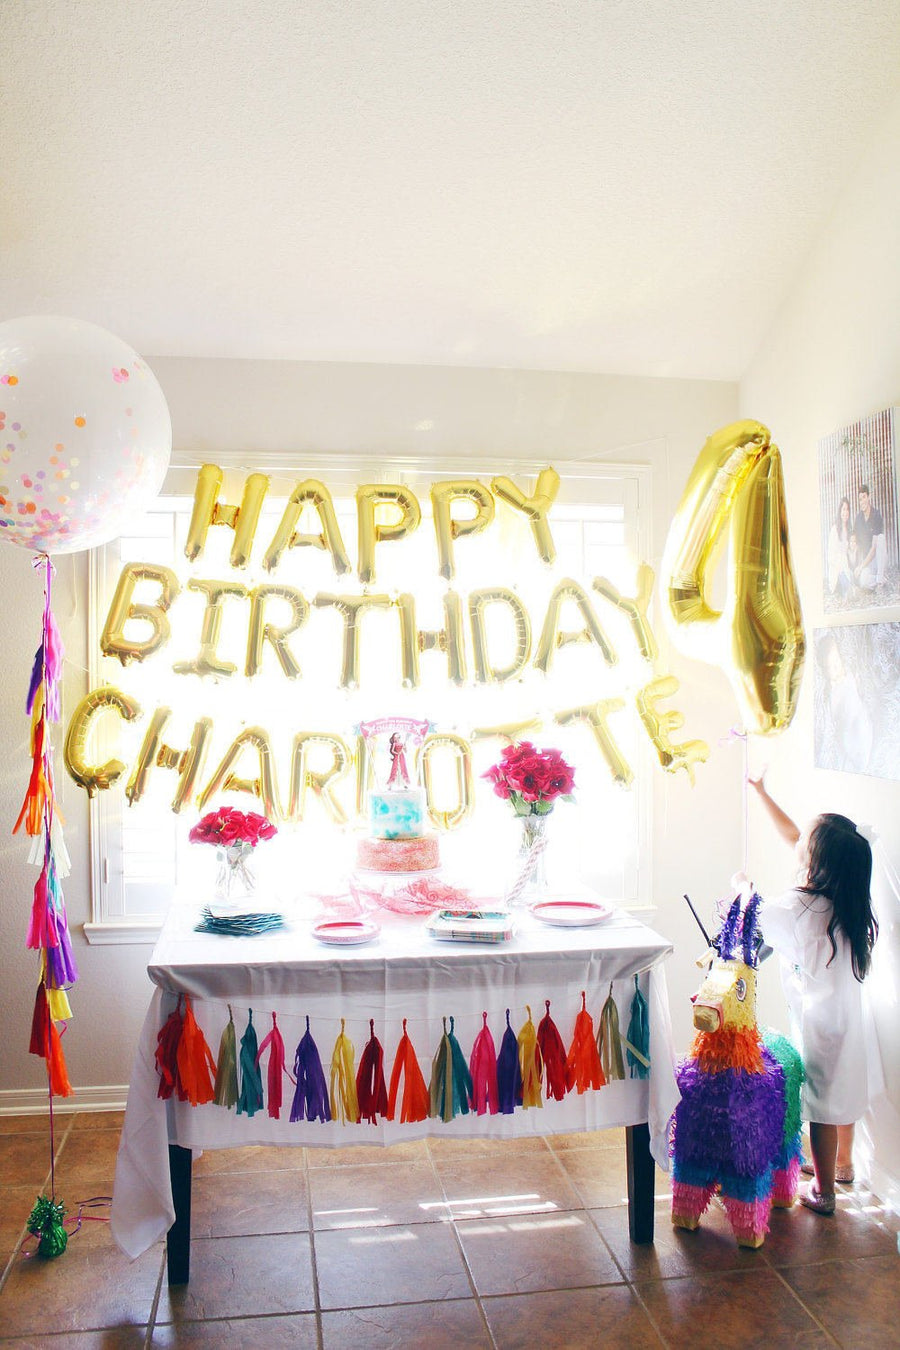 Happy Birthday Personalized Mylar Letter Balloons